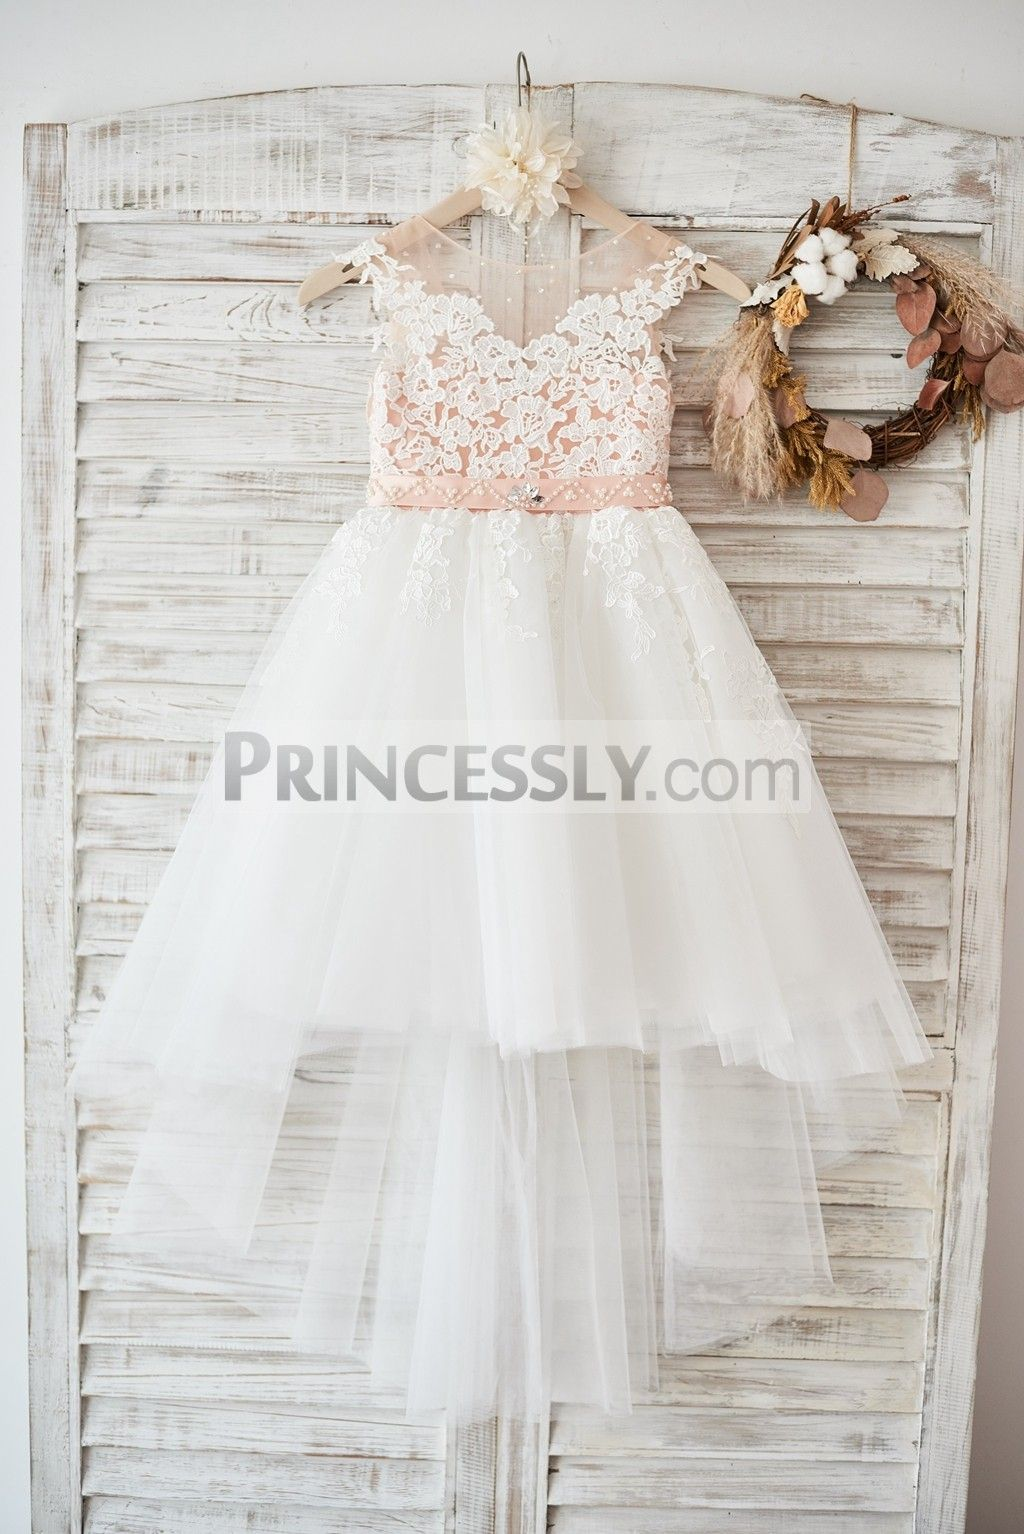 Cap sleeves ivory lace tulle hi low wedding party flower girl dress